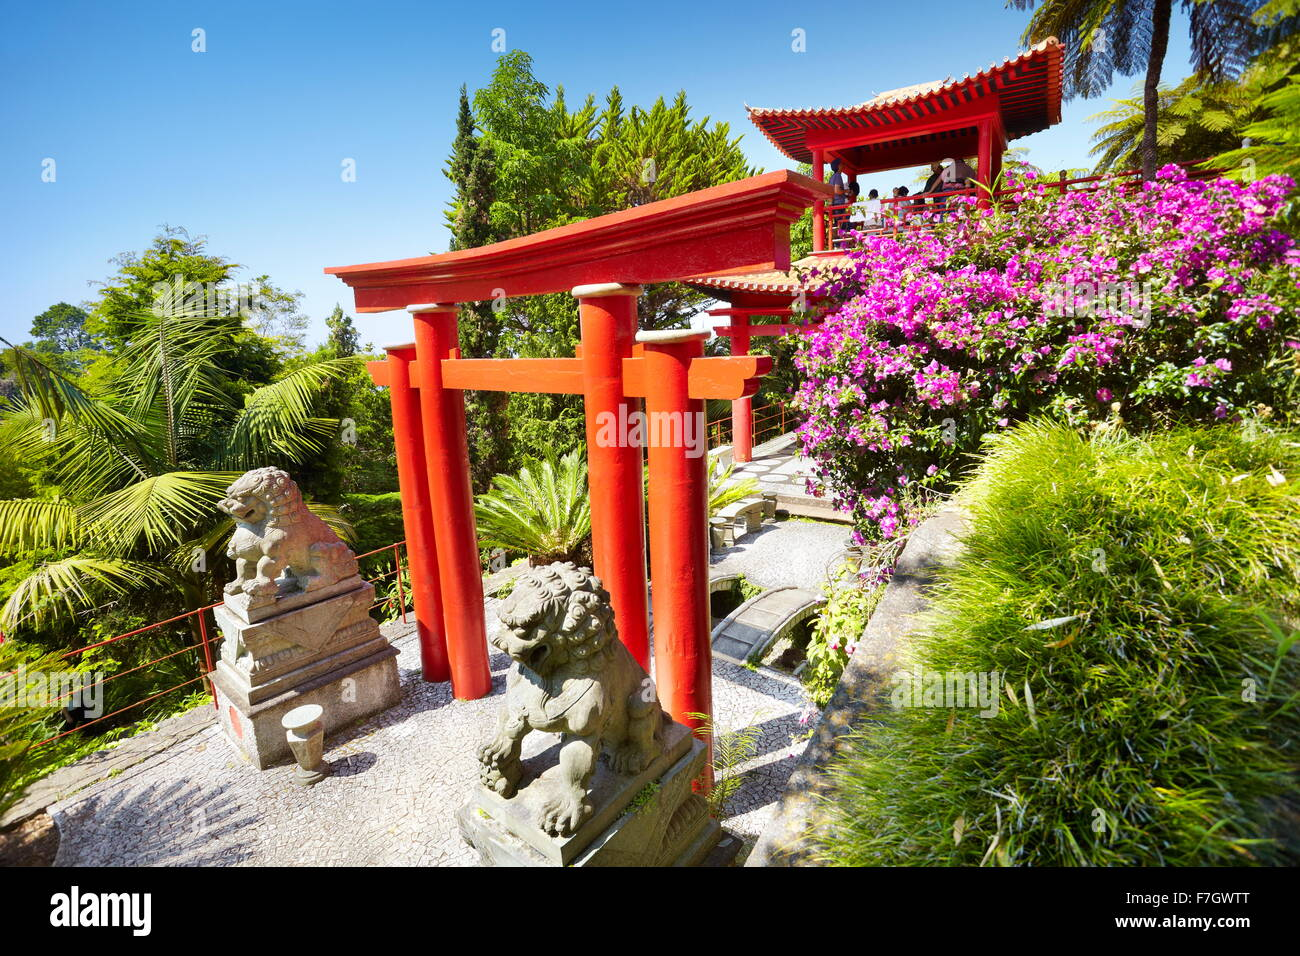 Japanese japan oriental tropical garden - Monte, Madeira Island, Portugal - Stock Image